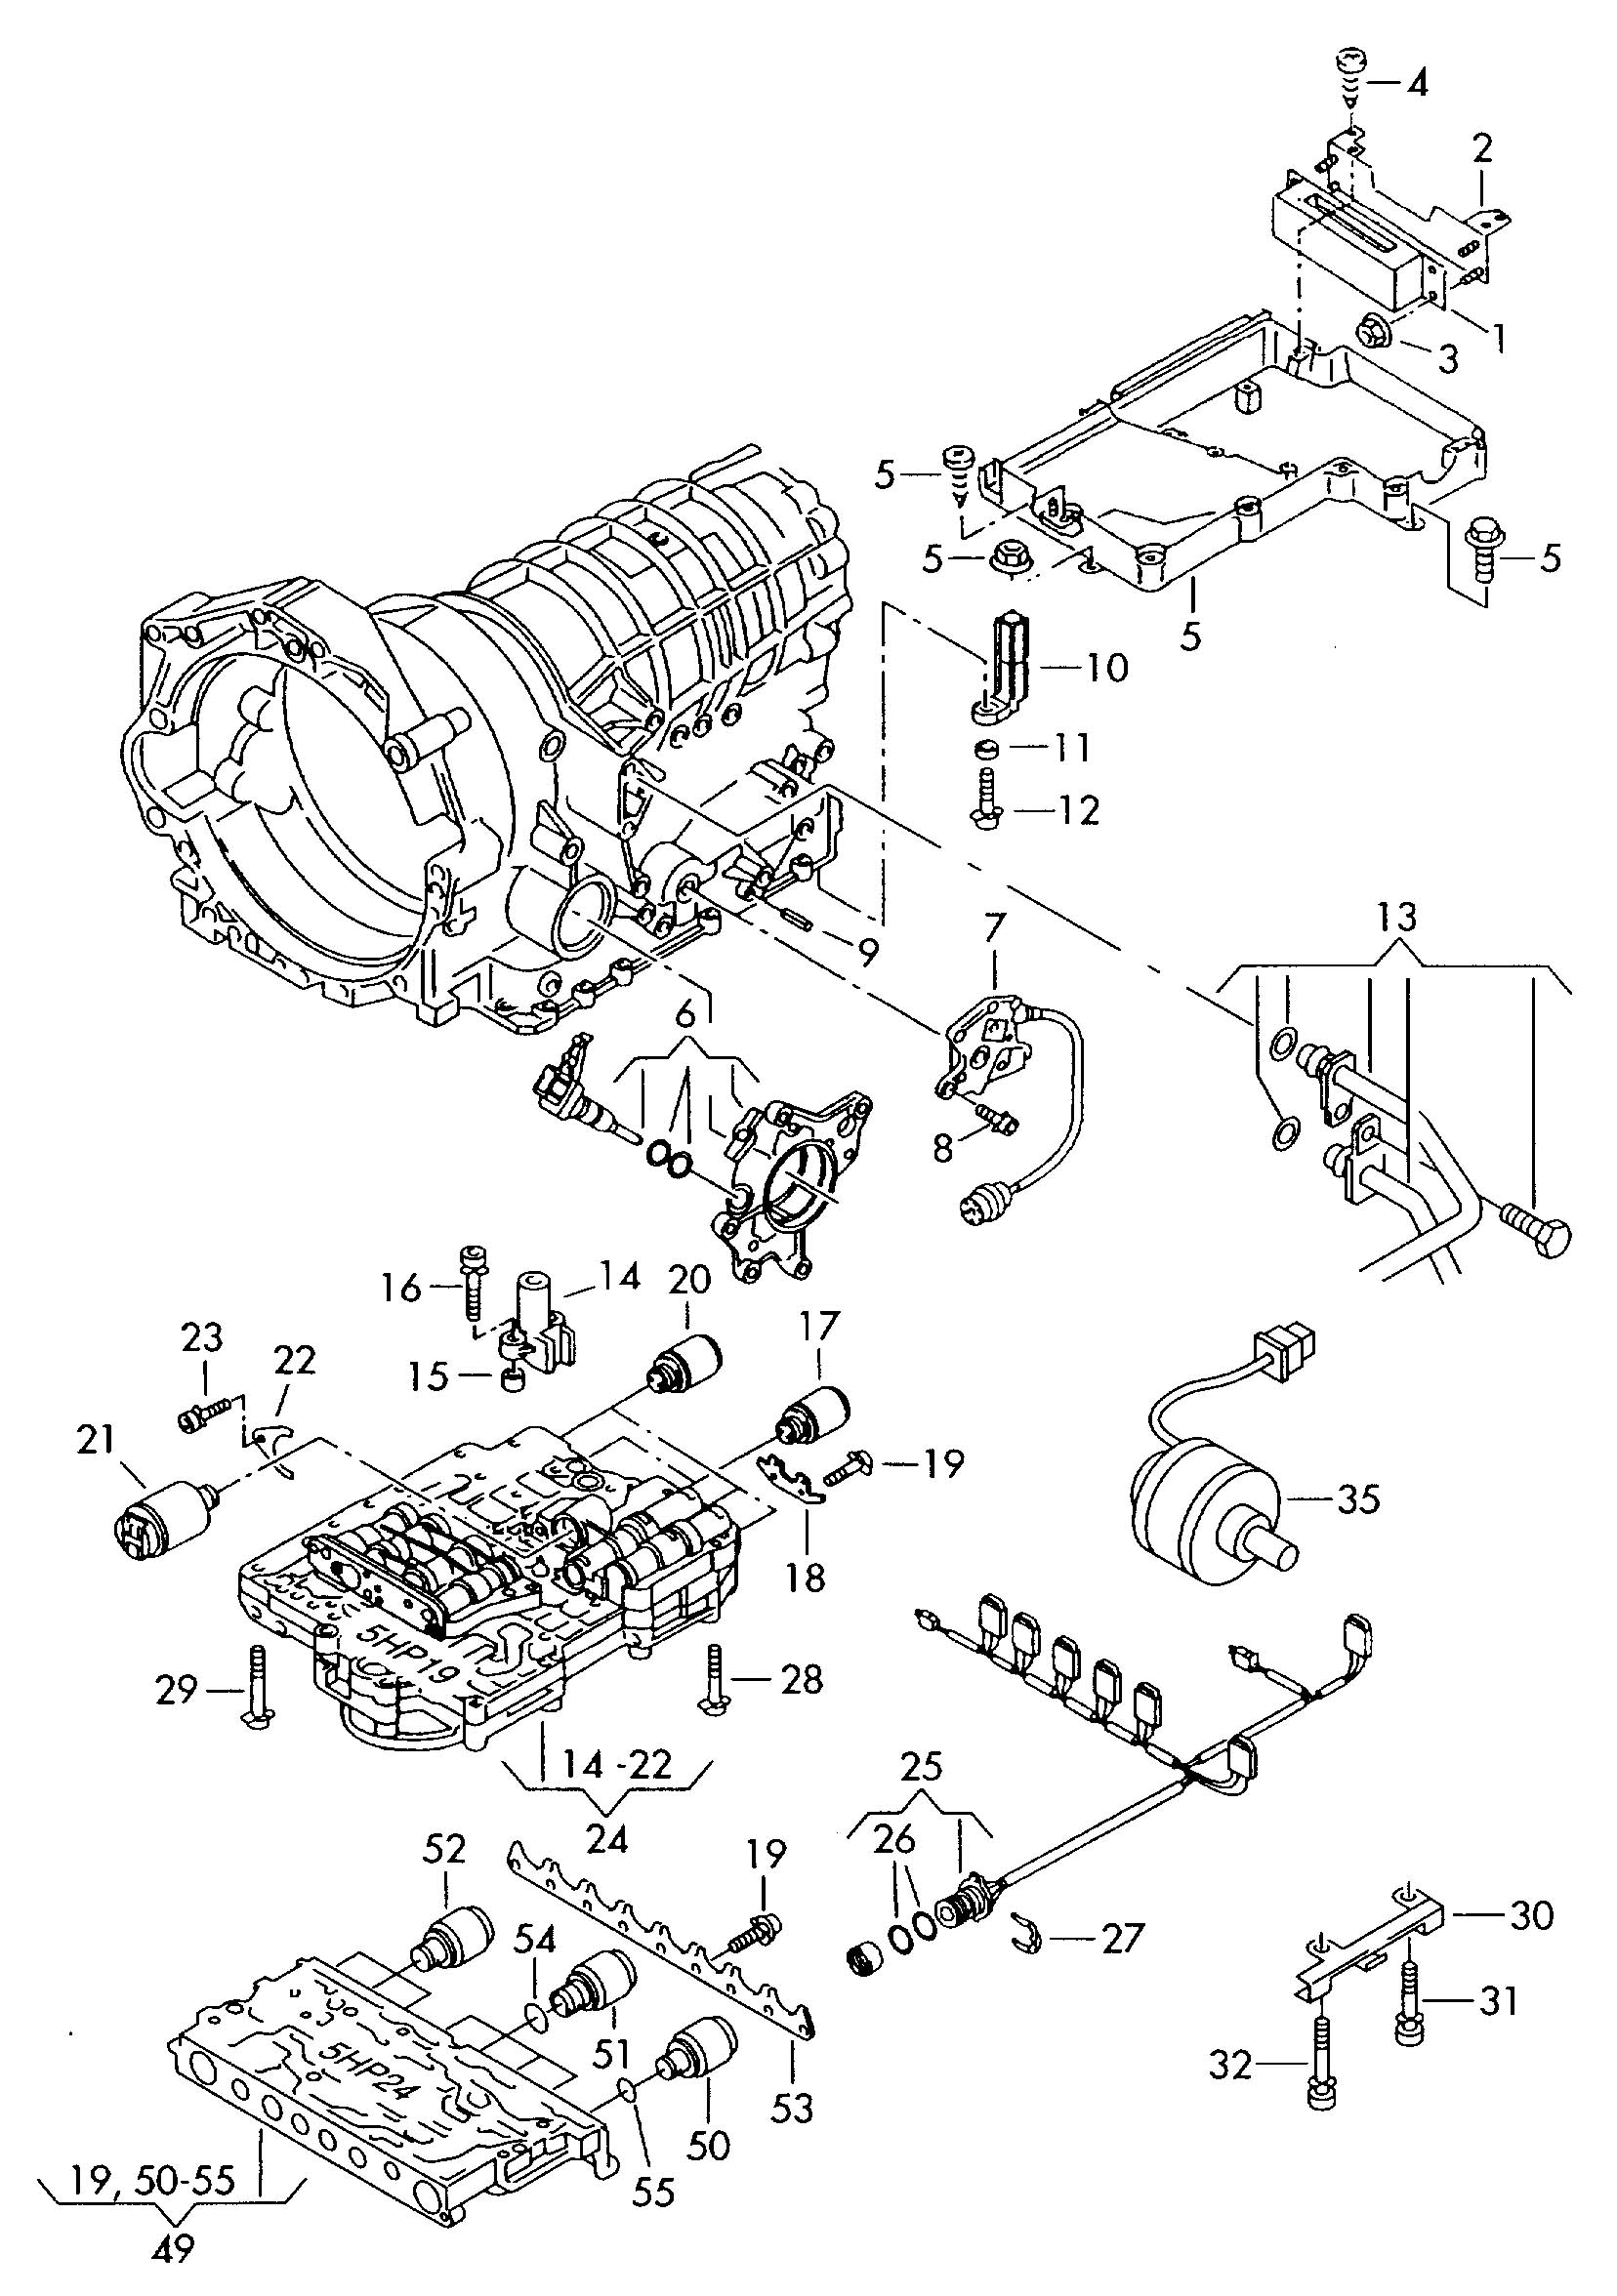 1998 Volkswagen Jetta Engine Diagram • Wiring Diagram For Free